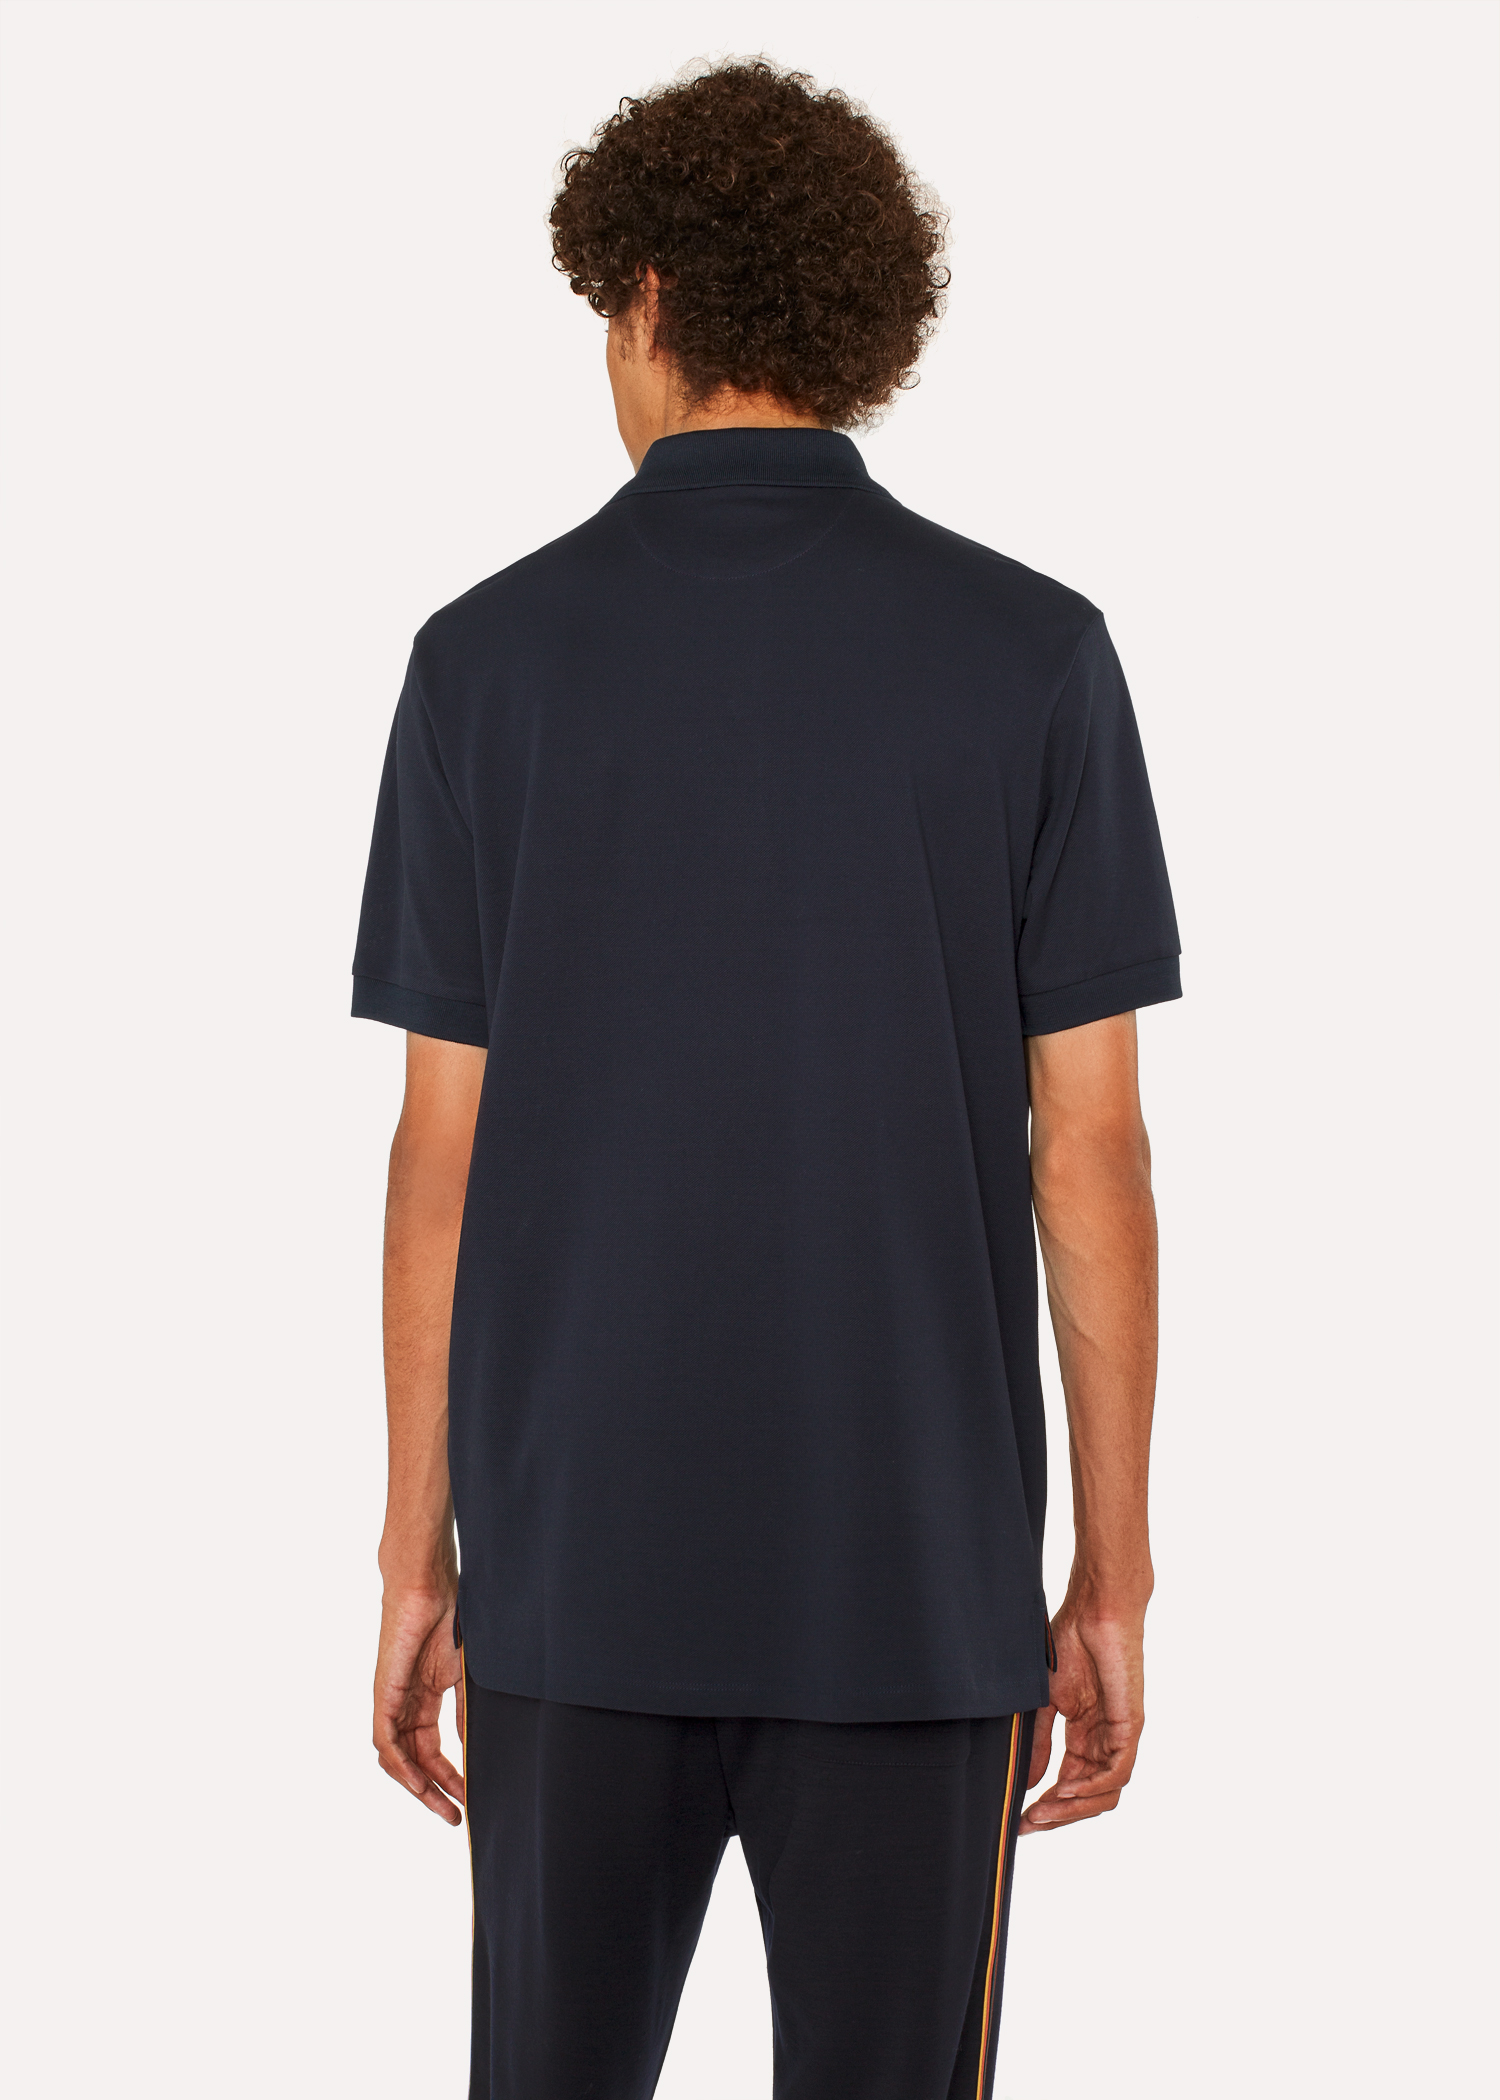 Mens Slim Fit Dark Navy Cotton Piqu Polo Shirt With Embroidered